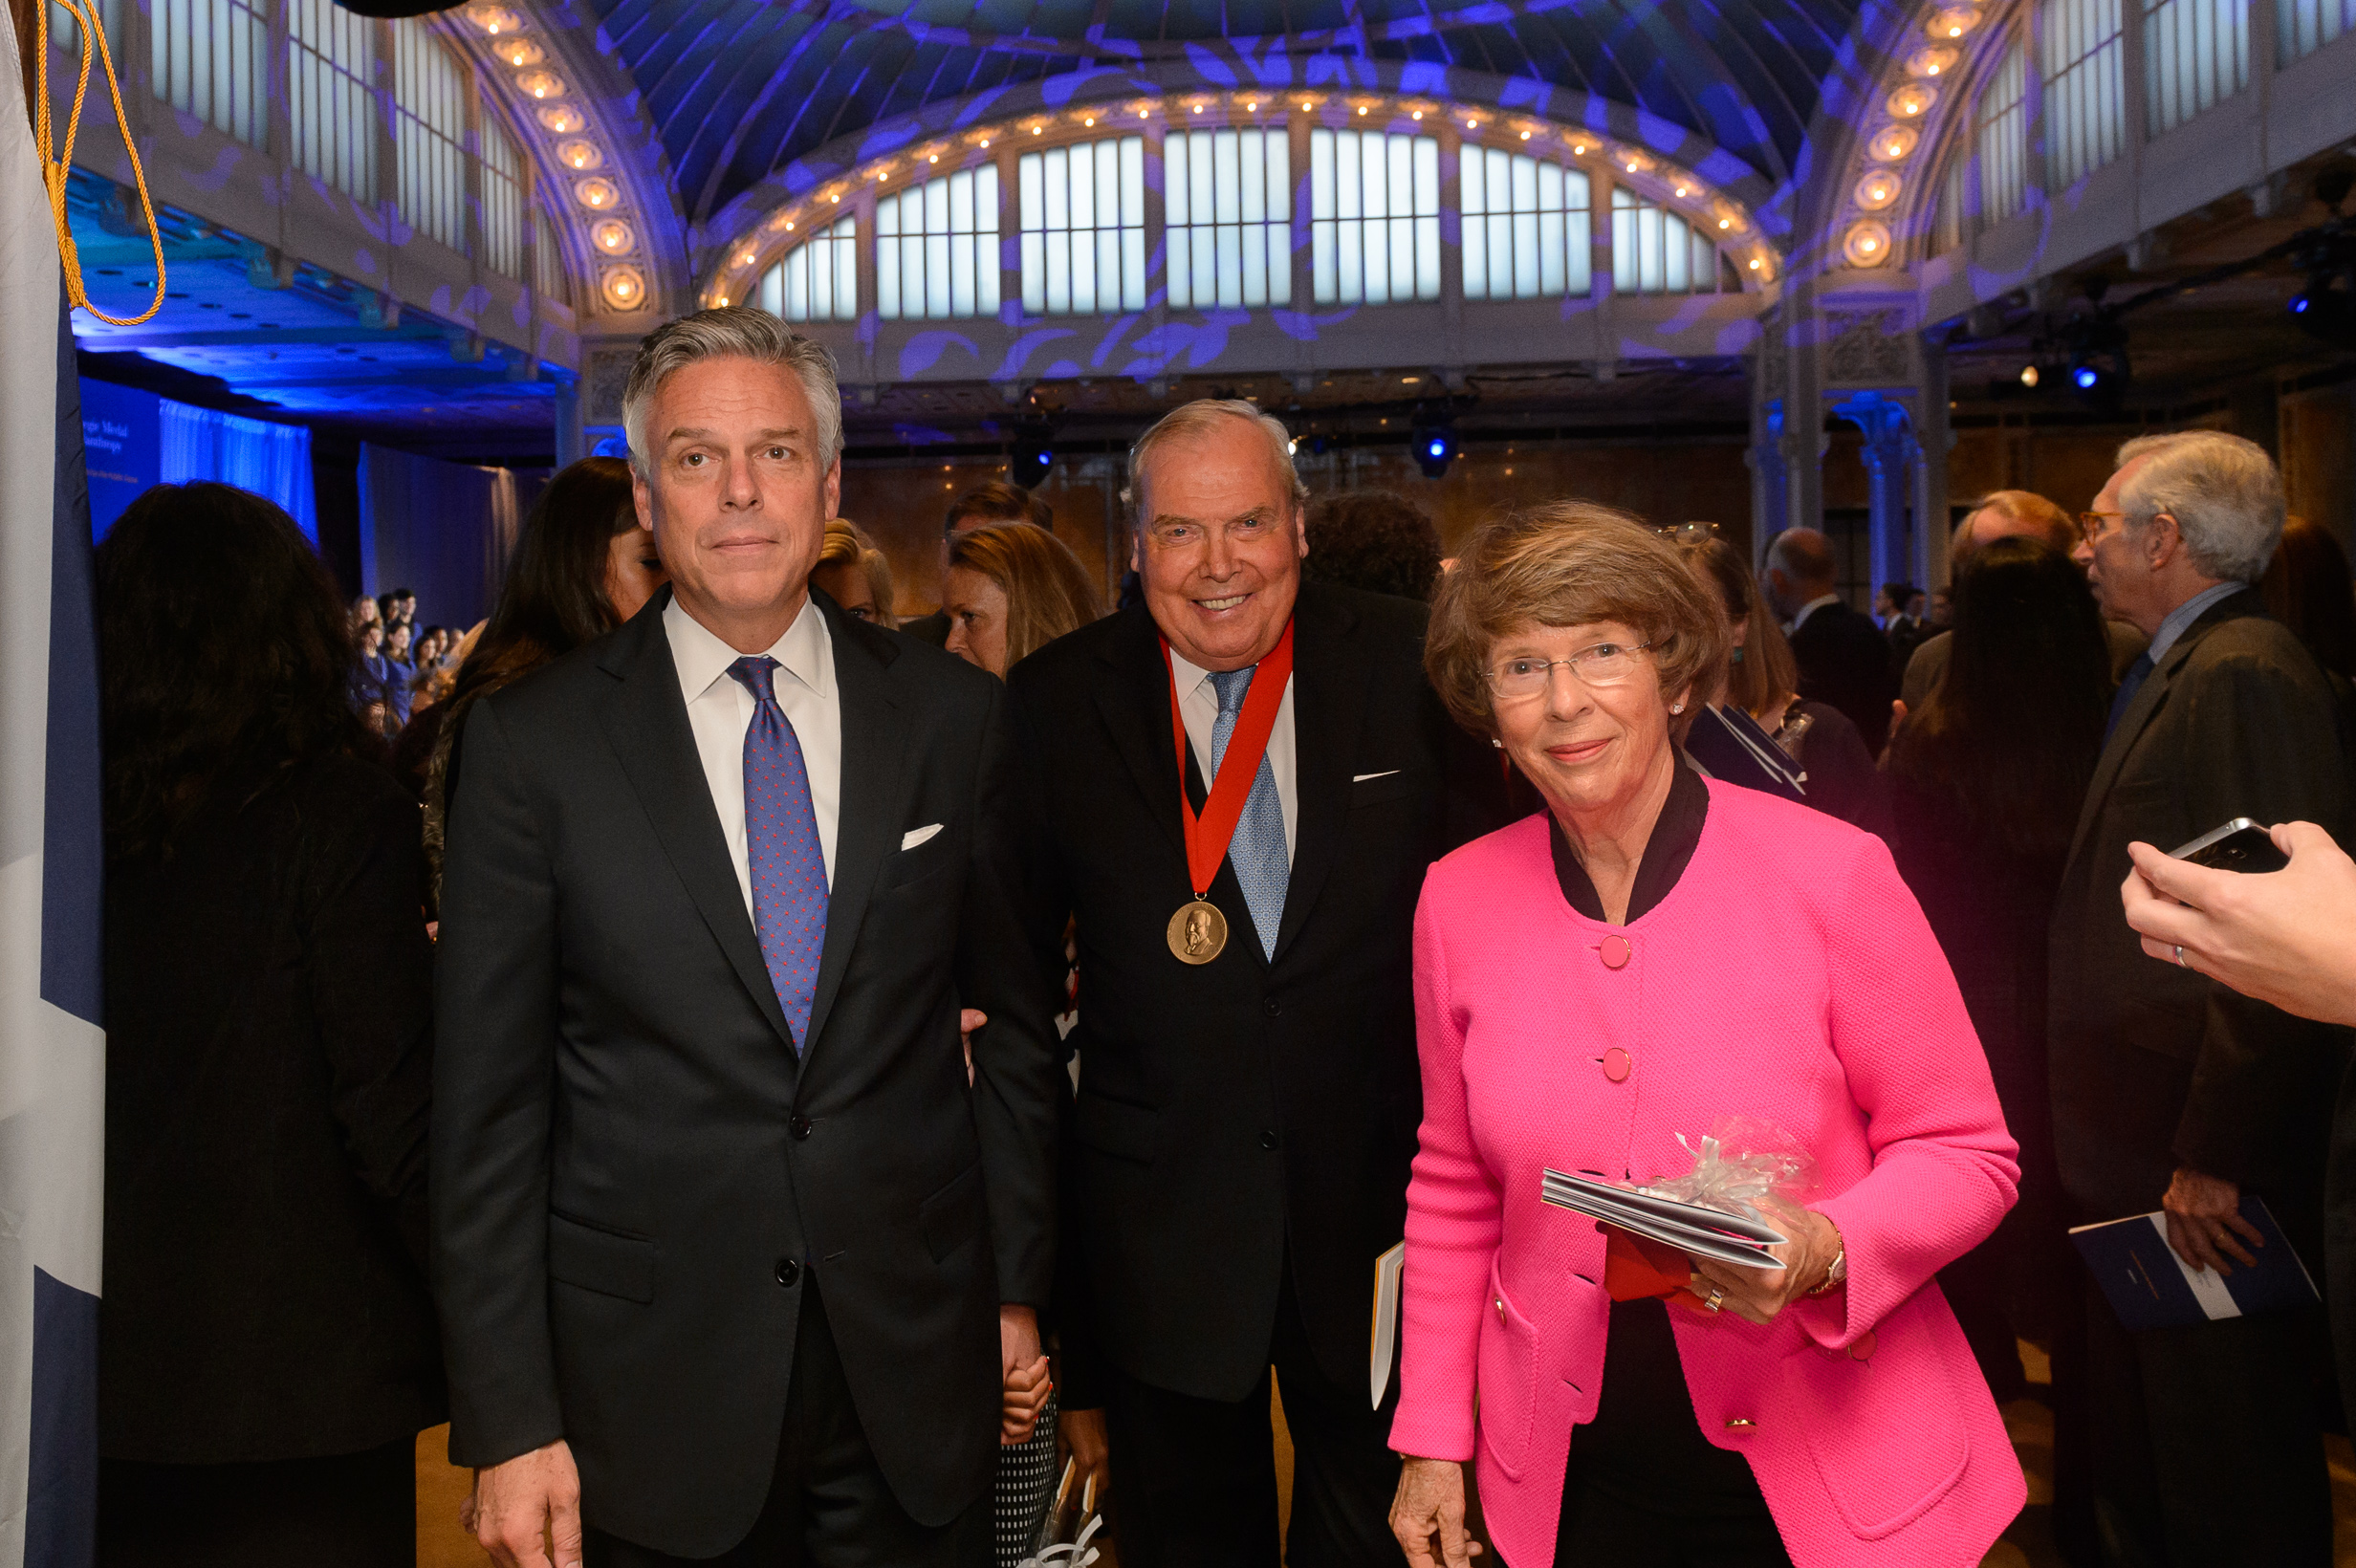 Carnegie Medal of Philanthropy presented to eight individuals and families